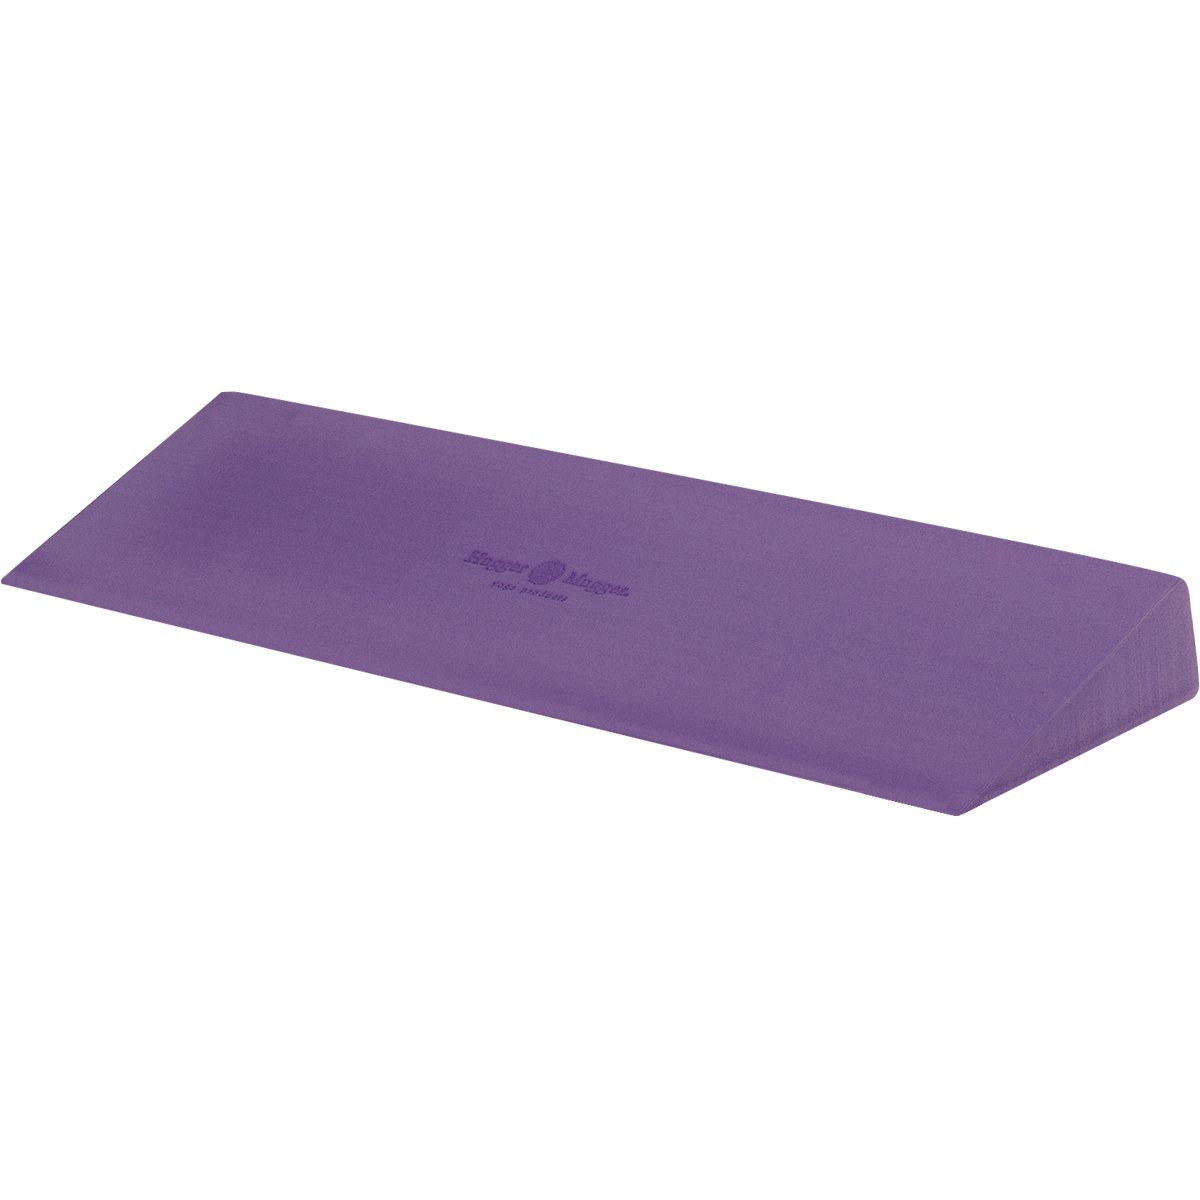 Hugger Mugger Foam Yoga Wedge: Amazon.es: Deportes y aire libre